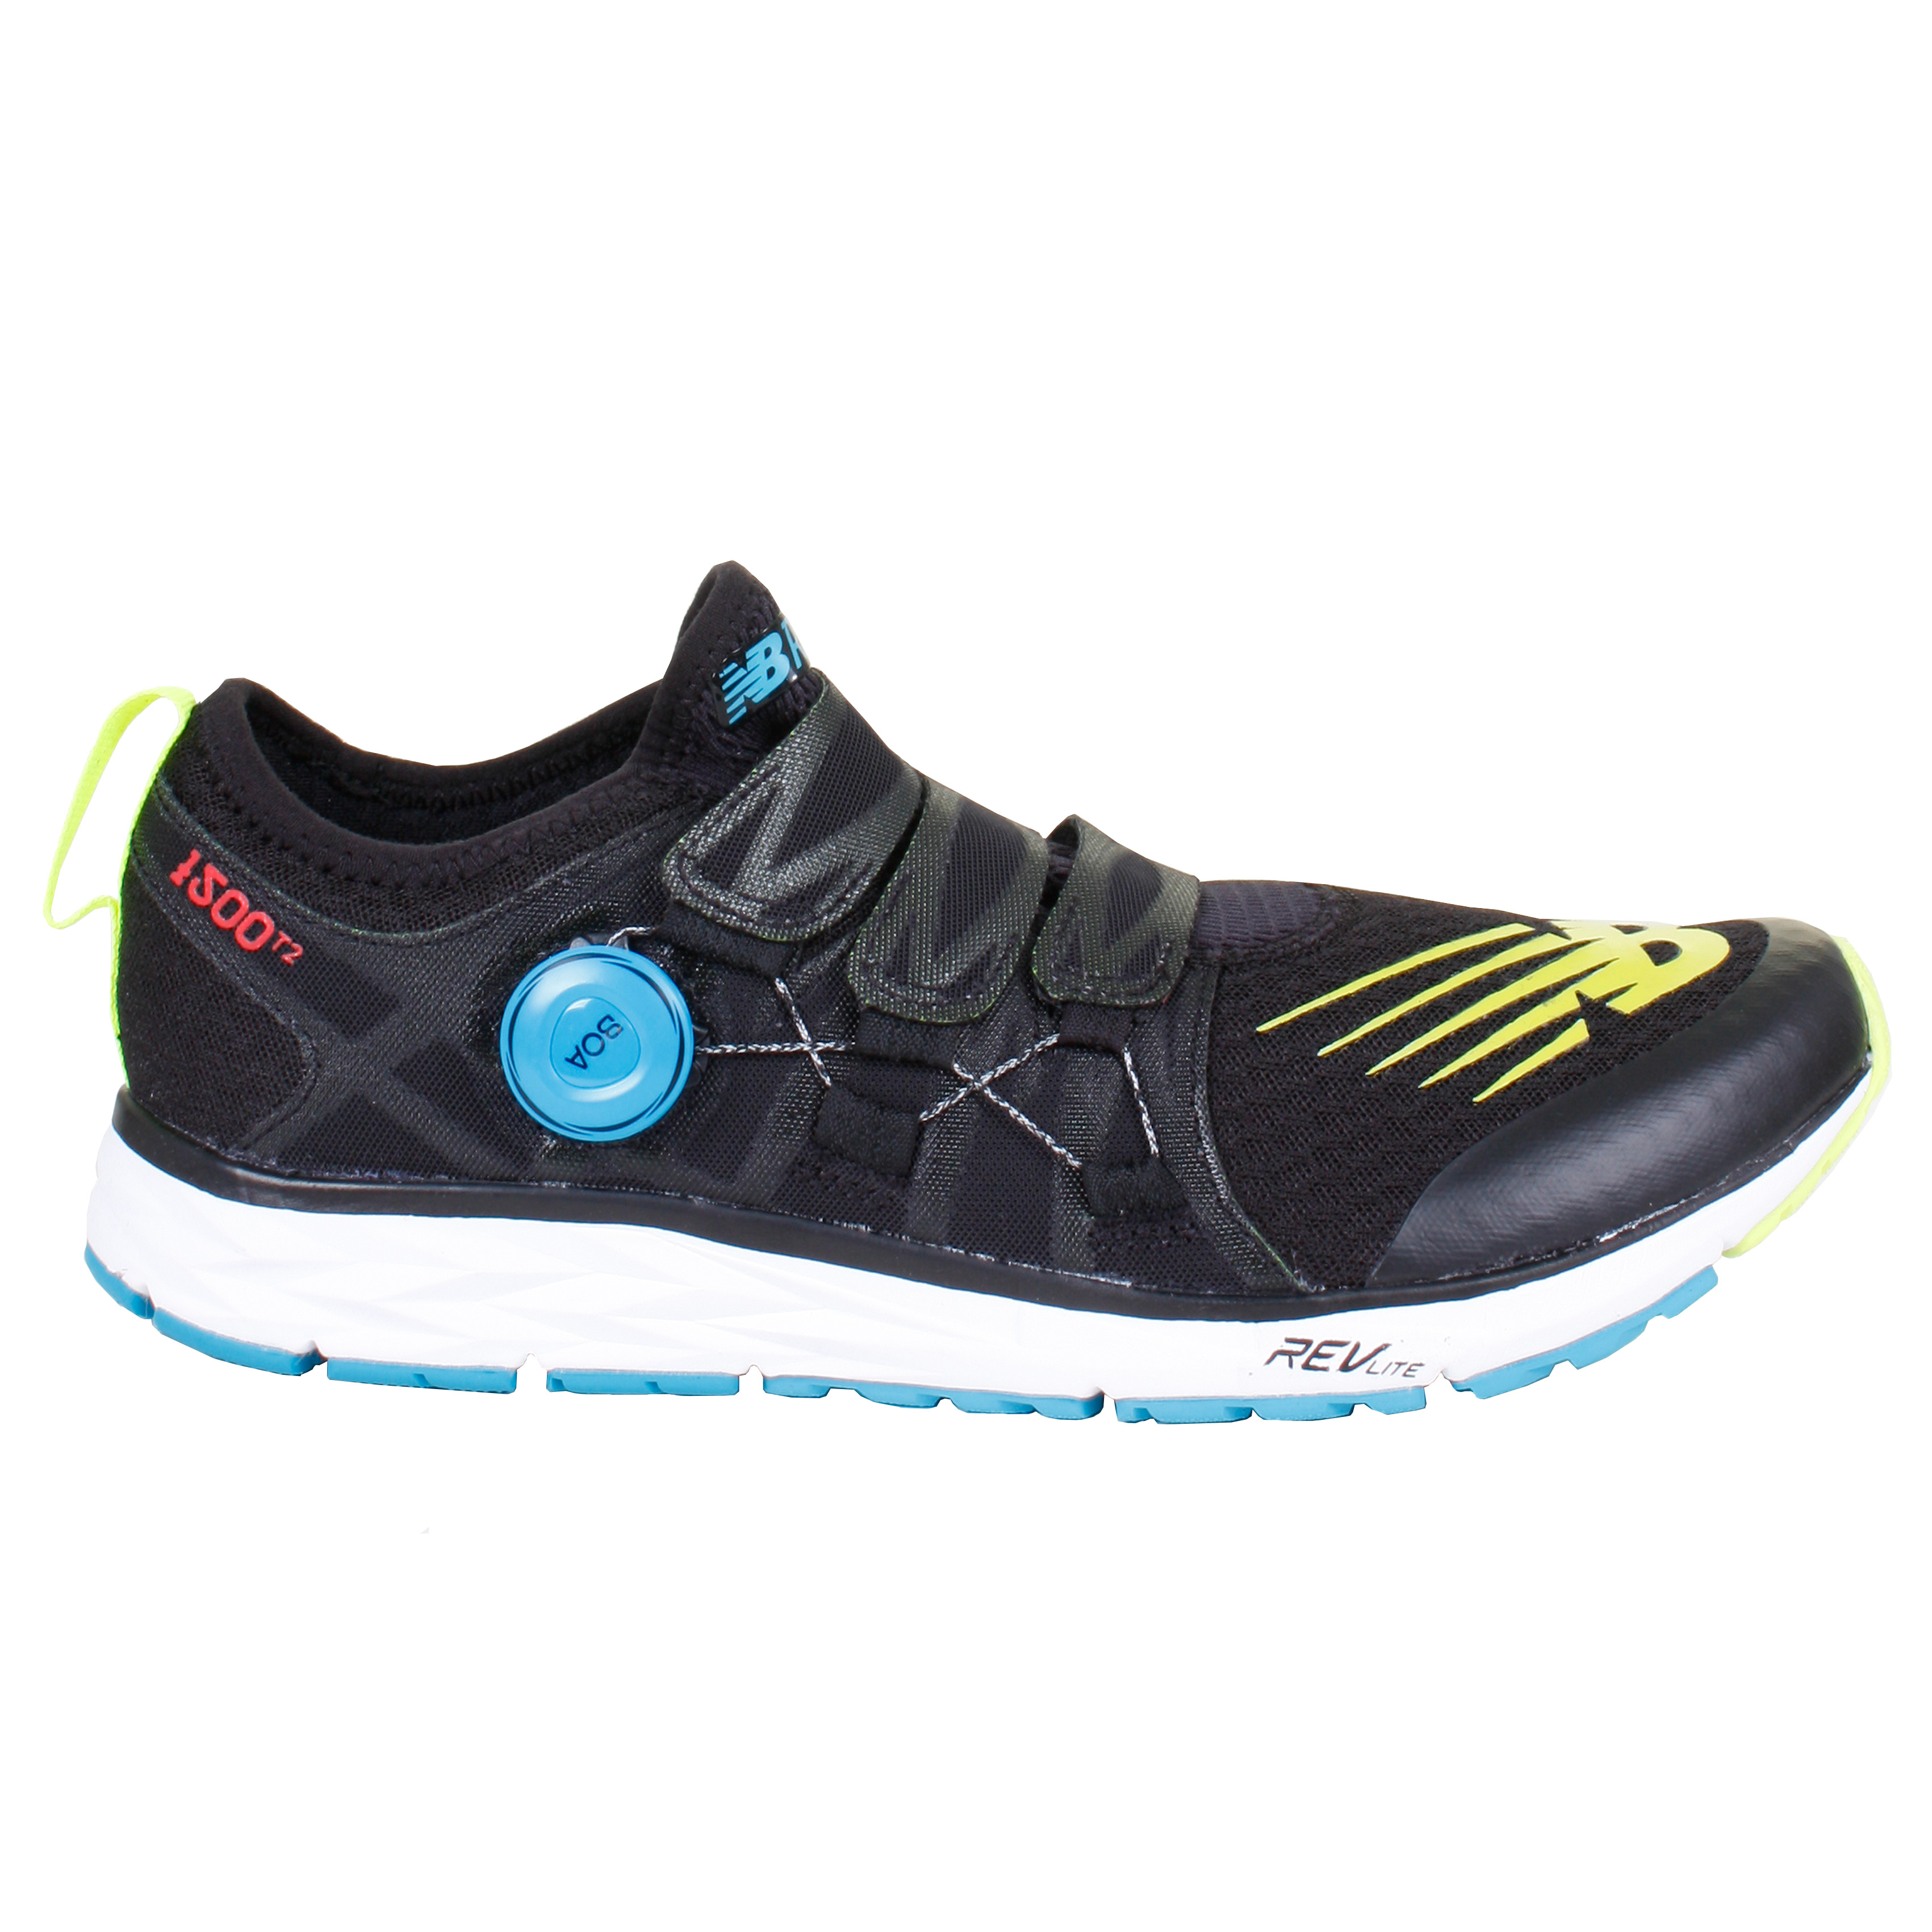 check out 00854 5aff2 ... New New New Balance homme 2018 1500 V4 Boa Fantomfit Mesh Upper  Trainers 178a8c ...